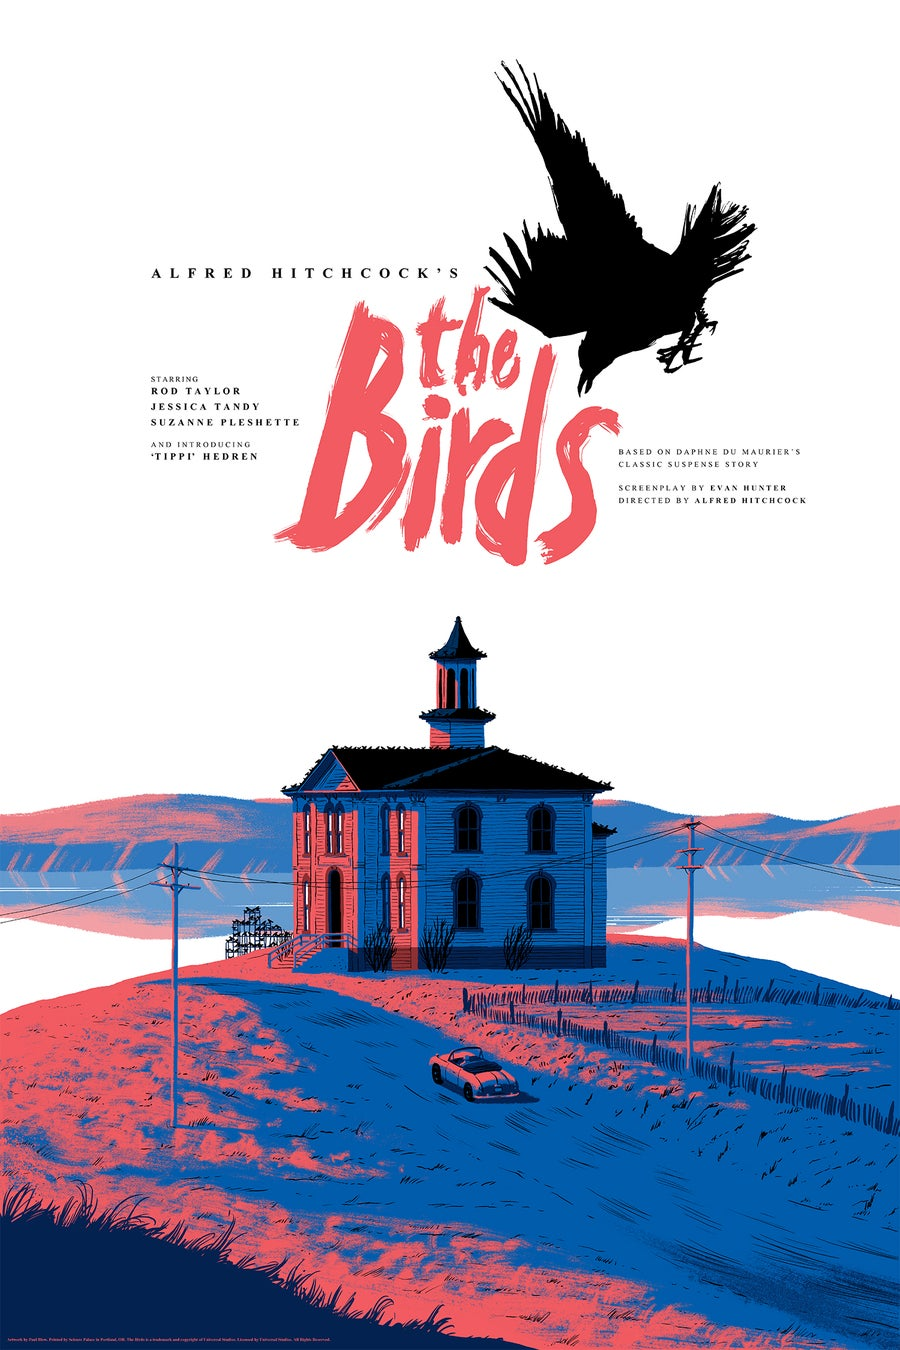 Image of The Birds by Alfred Hitchcock